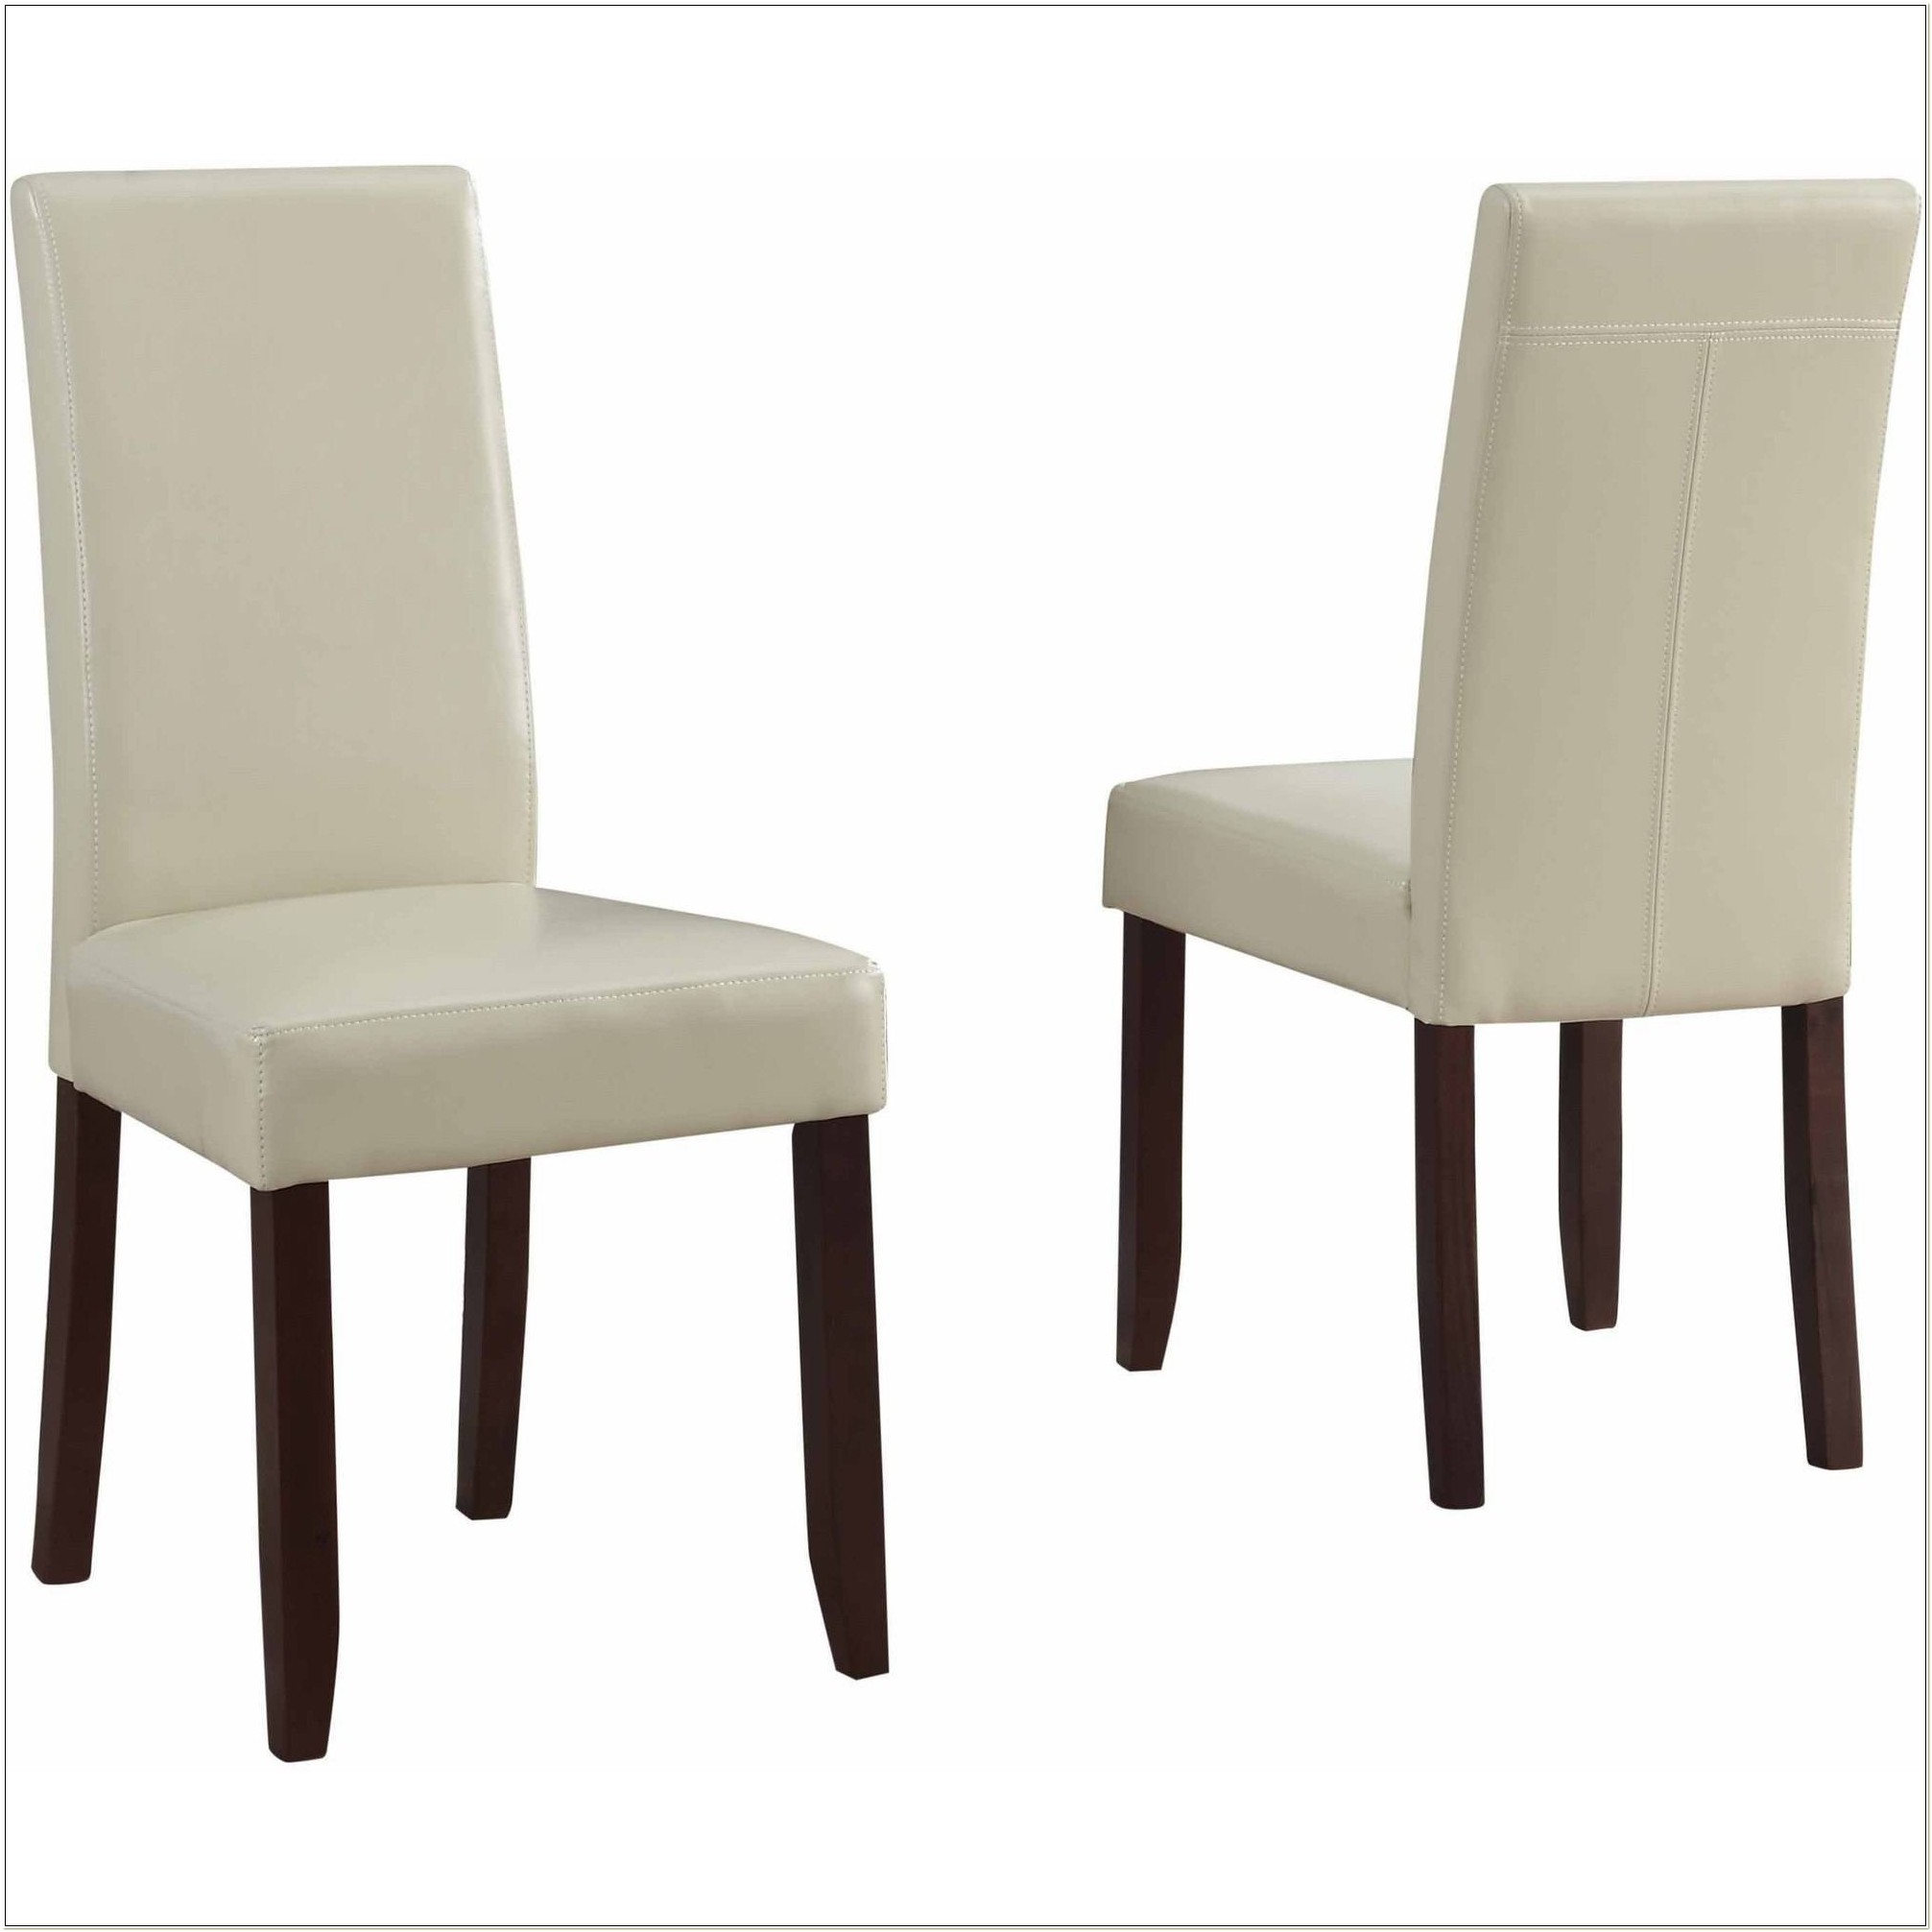 Leather Dining Room Chairs Walmart